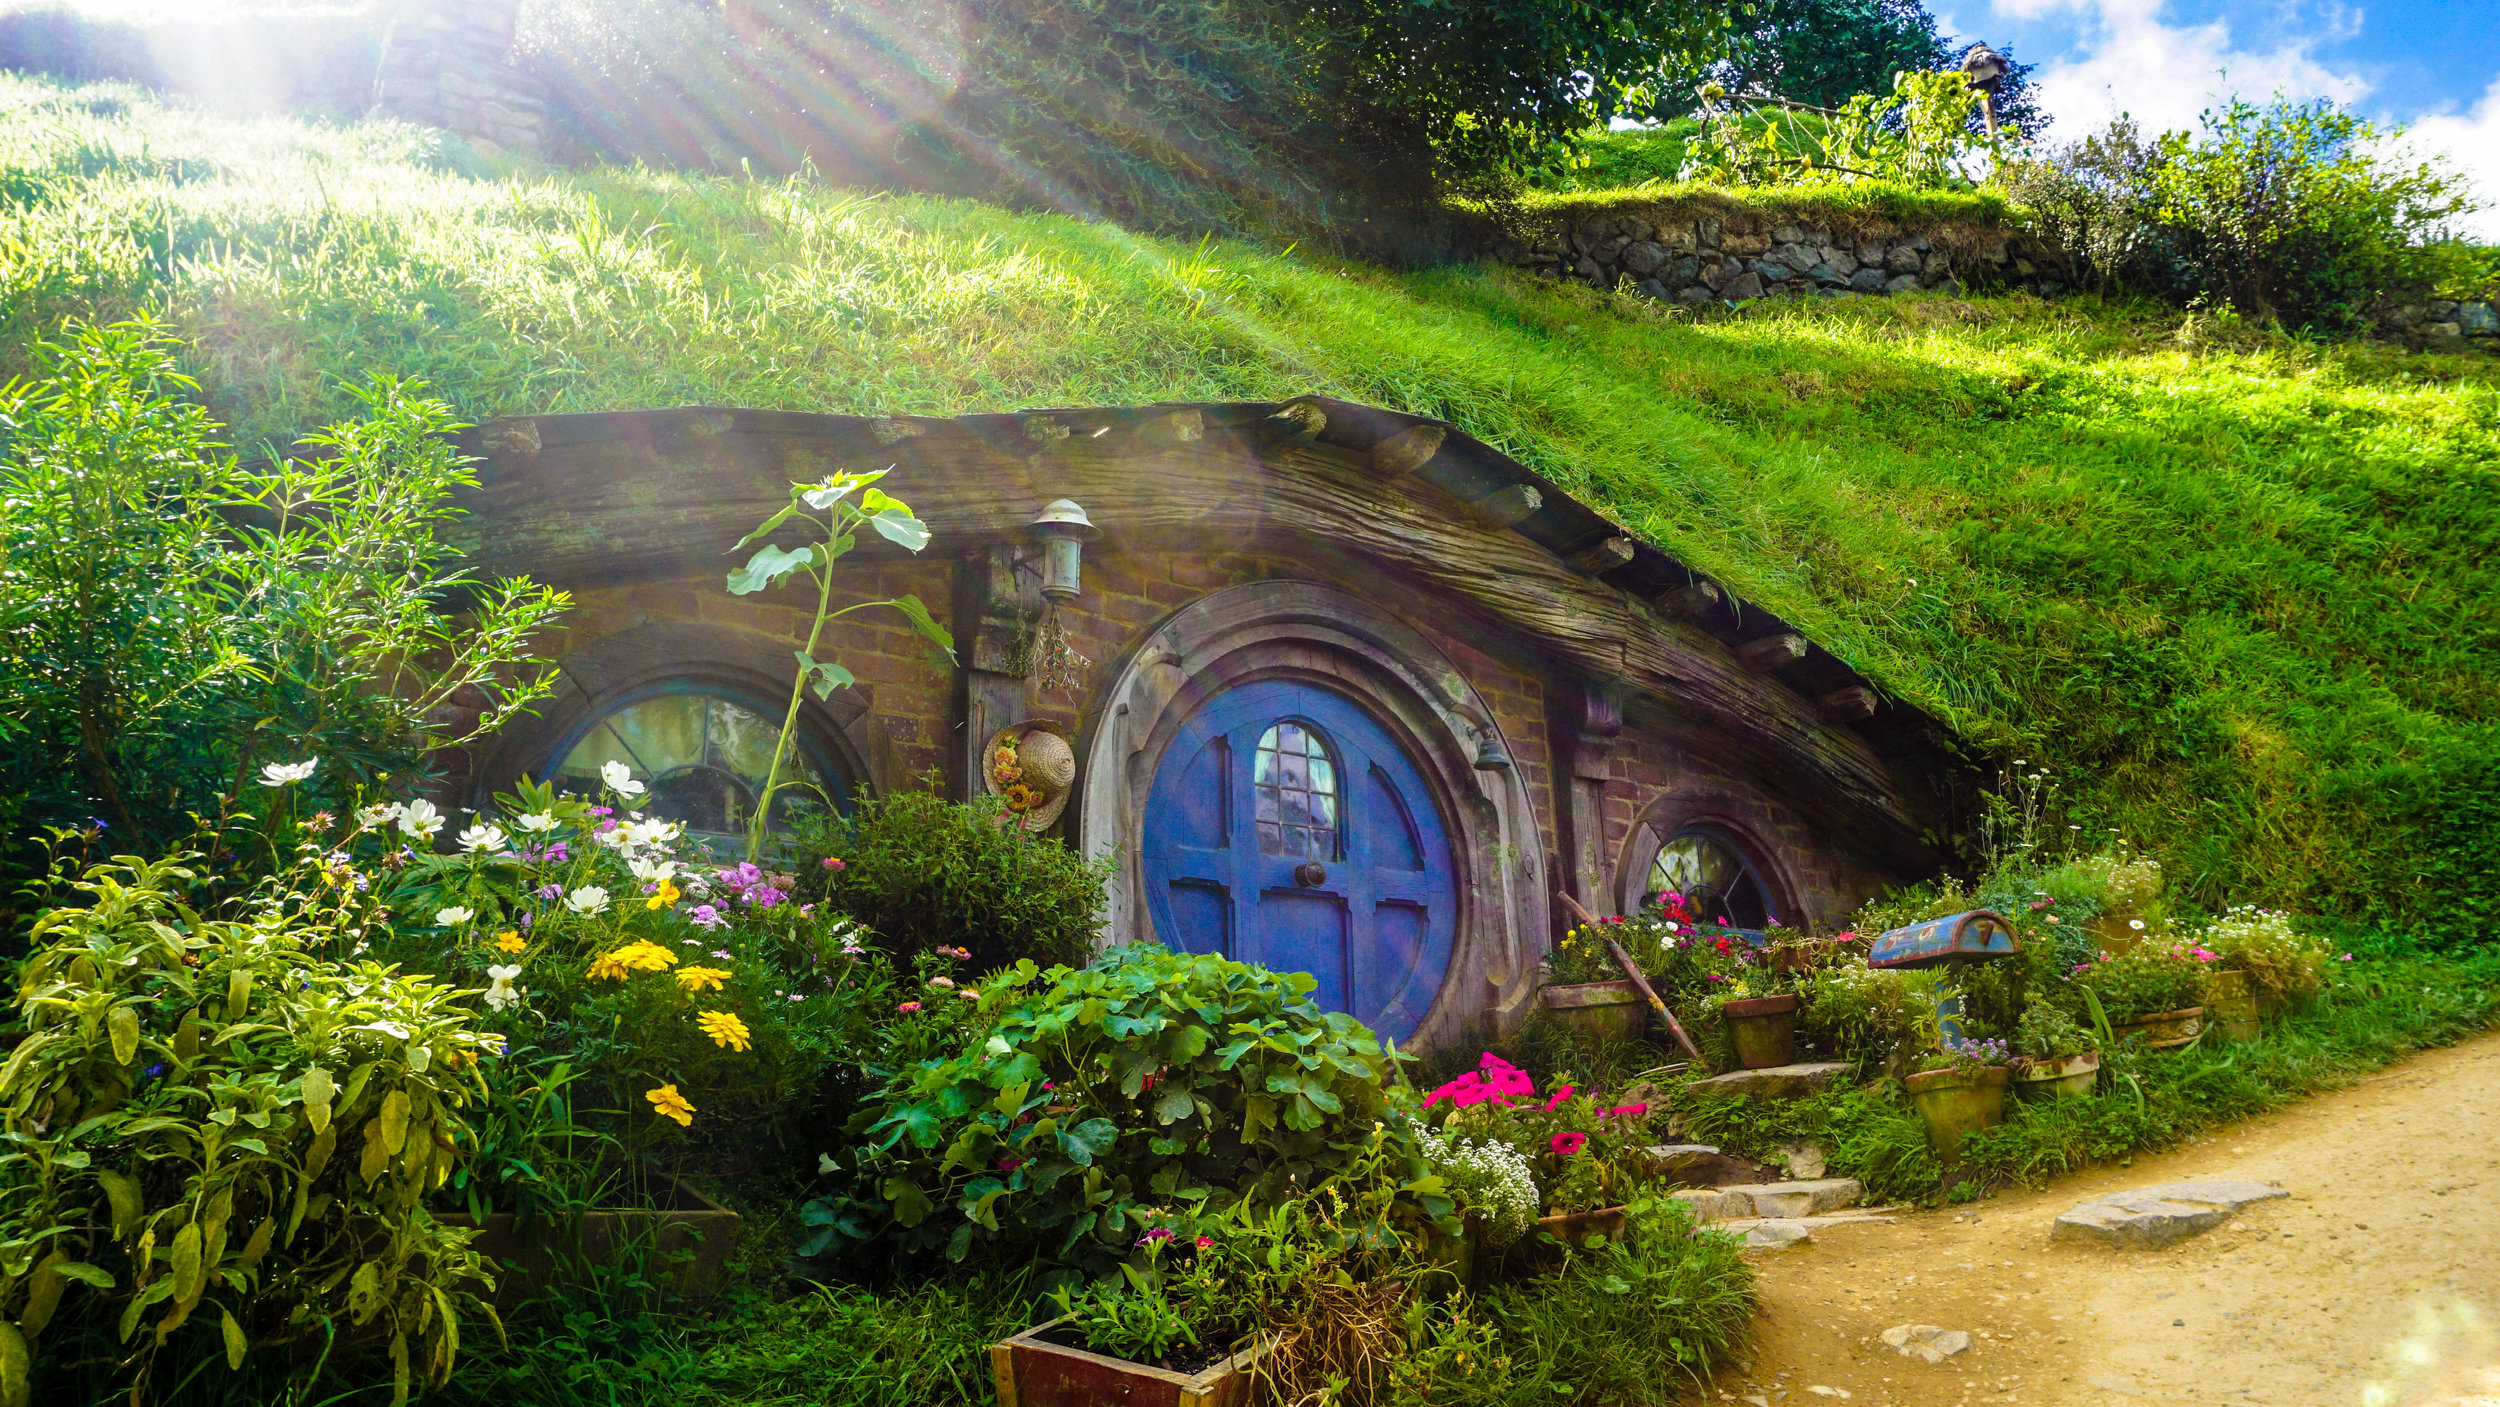 Hobbit Hole from the movies